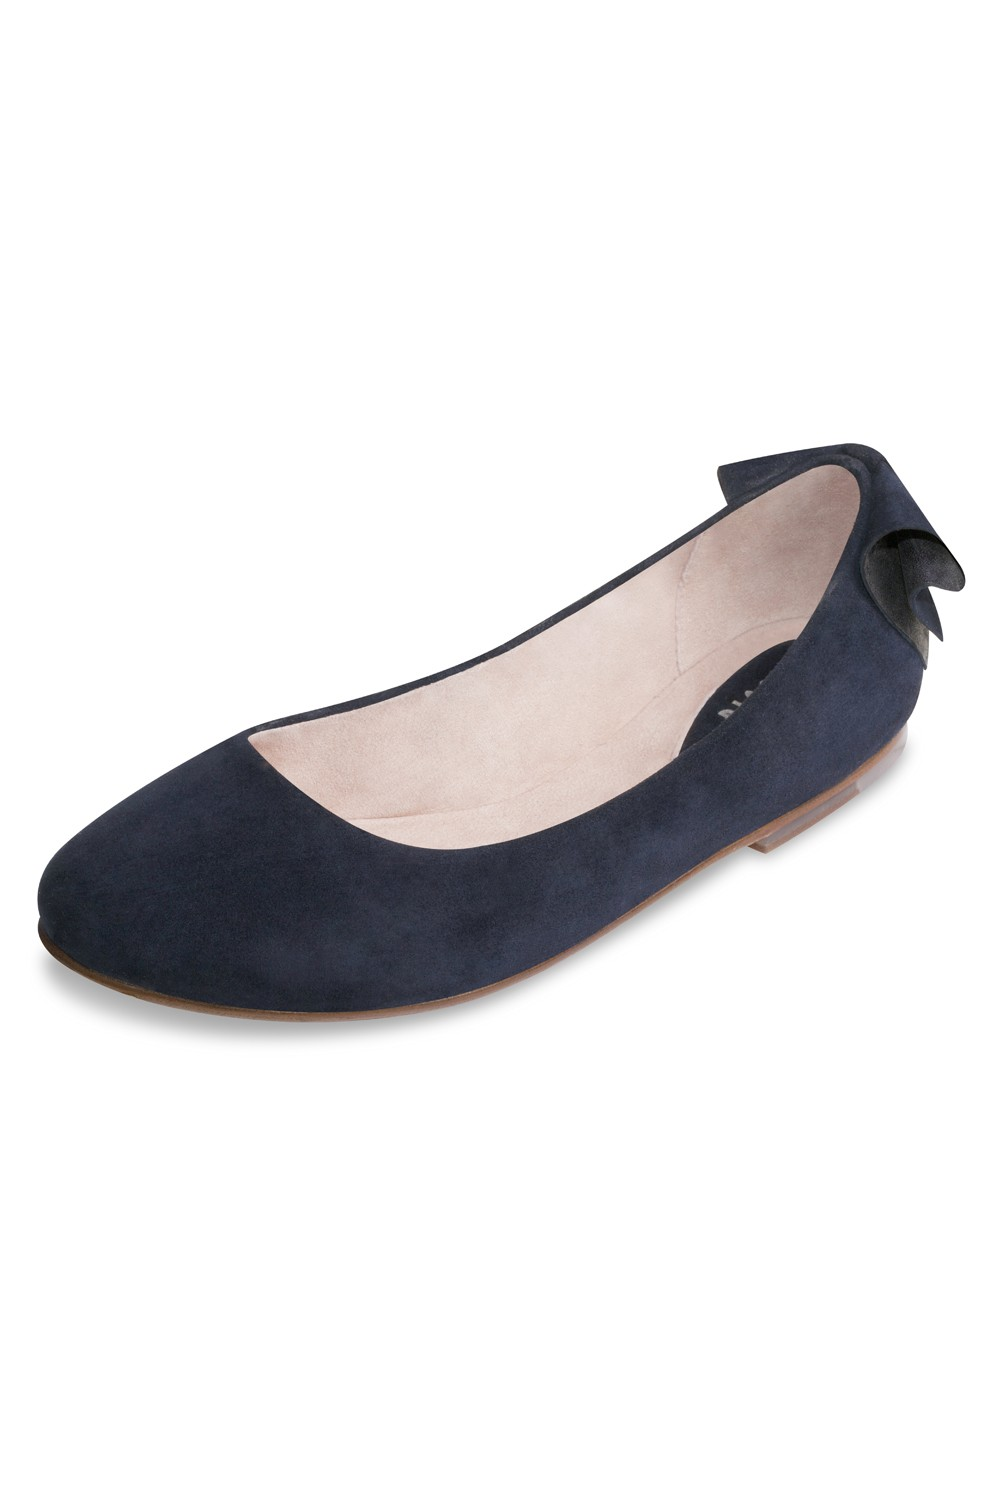 Yse Ladies Ballet Flat  Womens Fashion Shoes